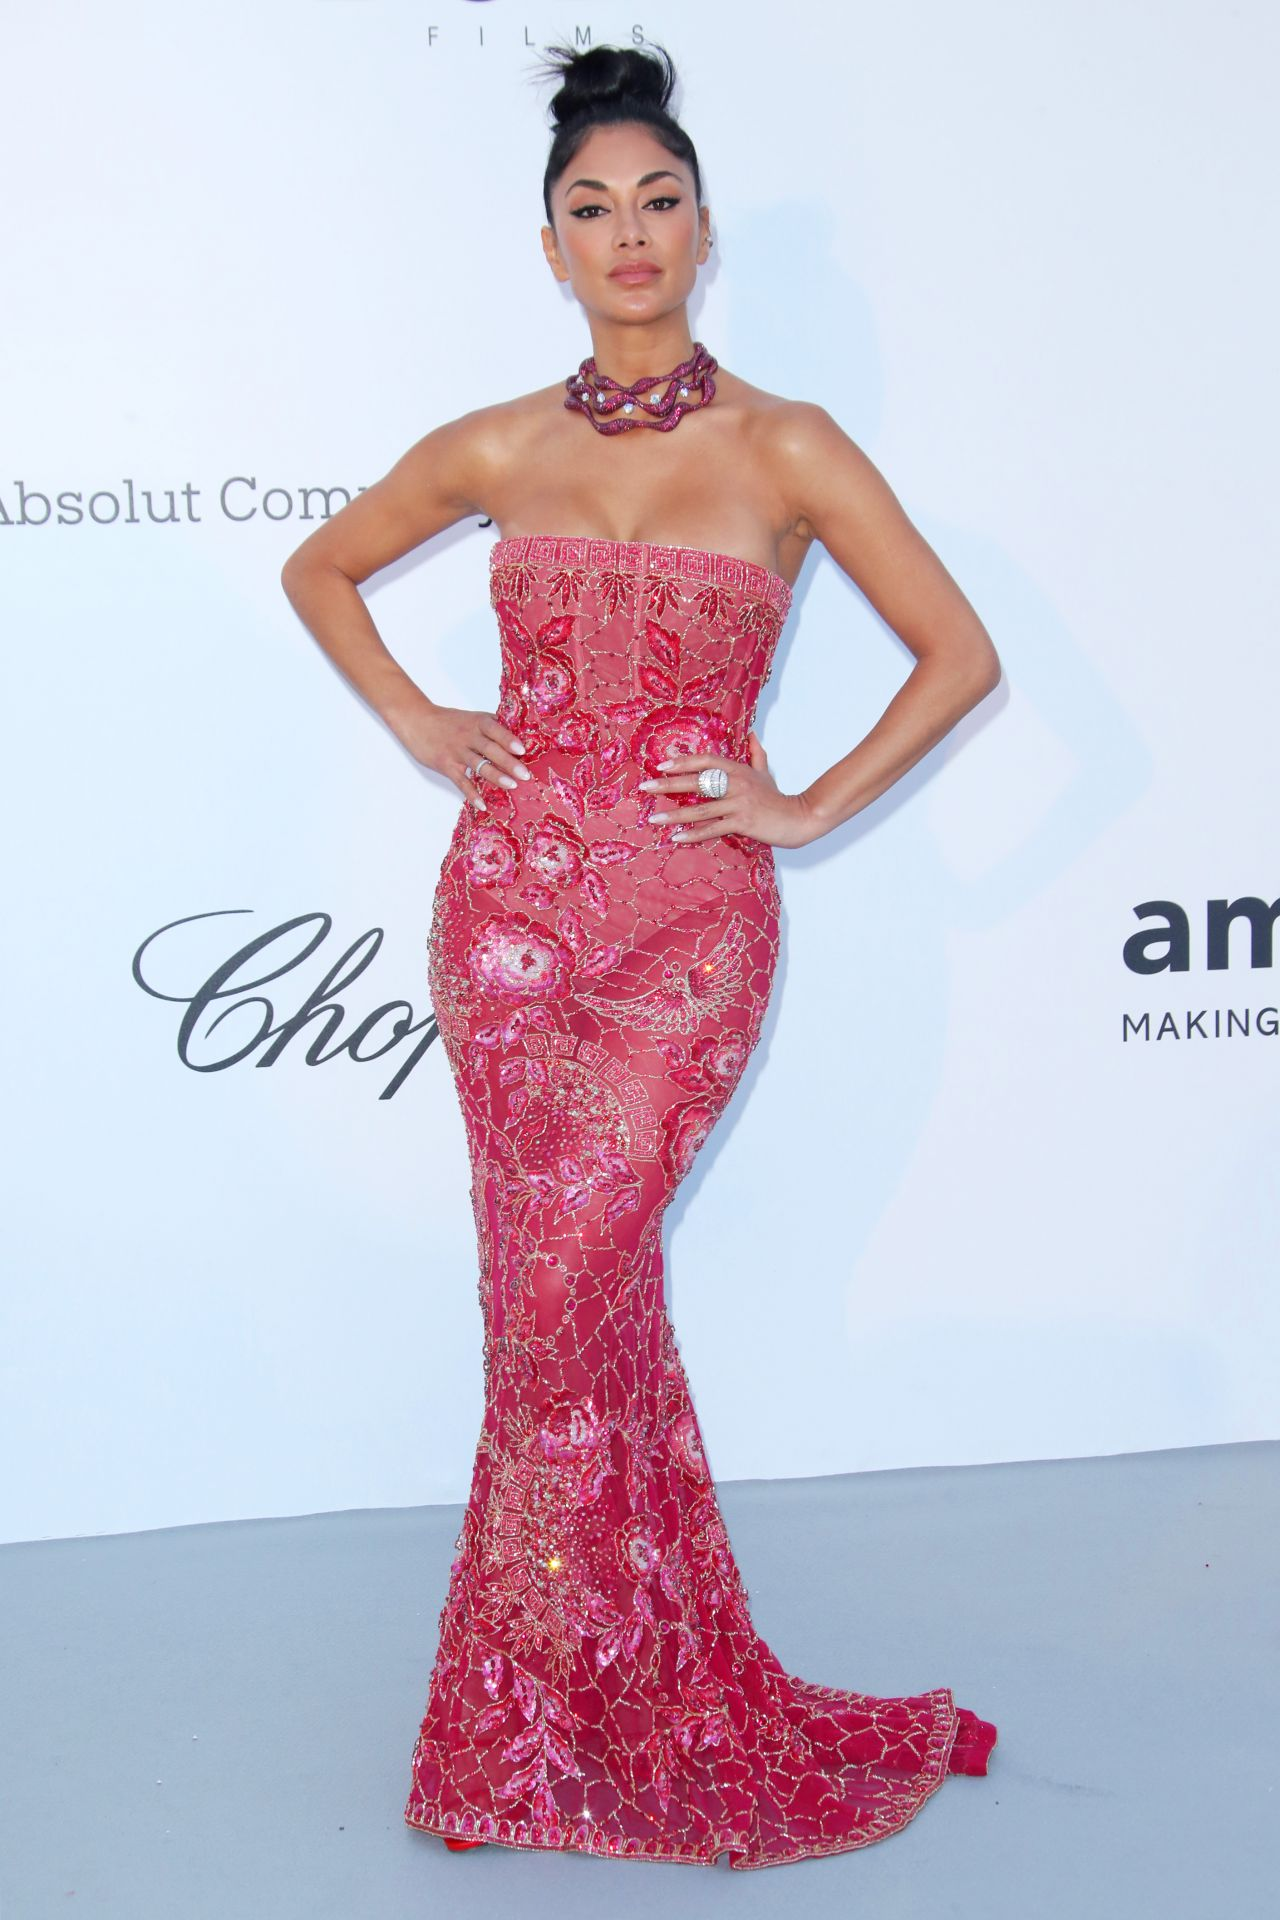 nicole-scherzinger-amfar-s-cinema-against-aids-gala-in-cannes-05-17-2018-8.jpg